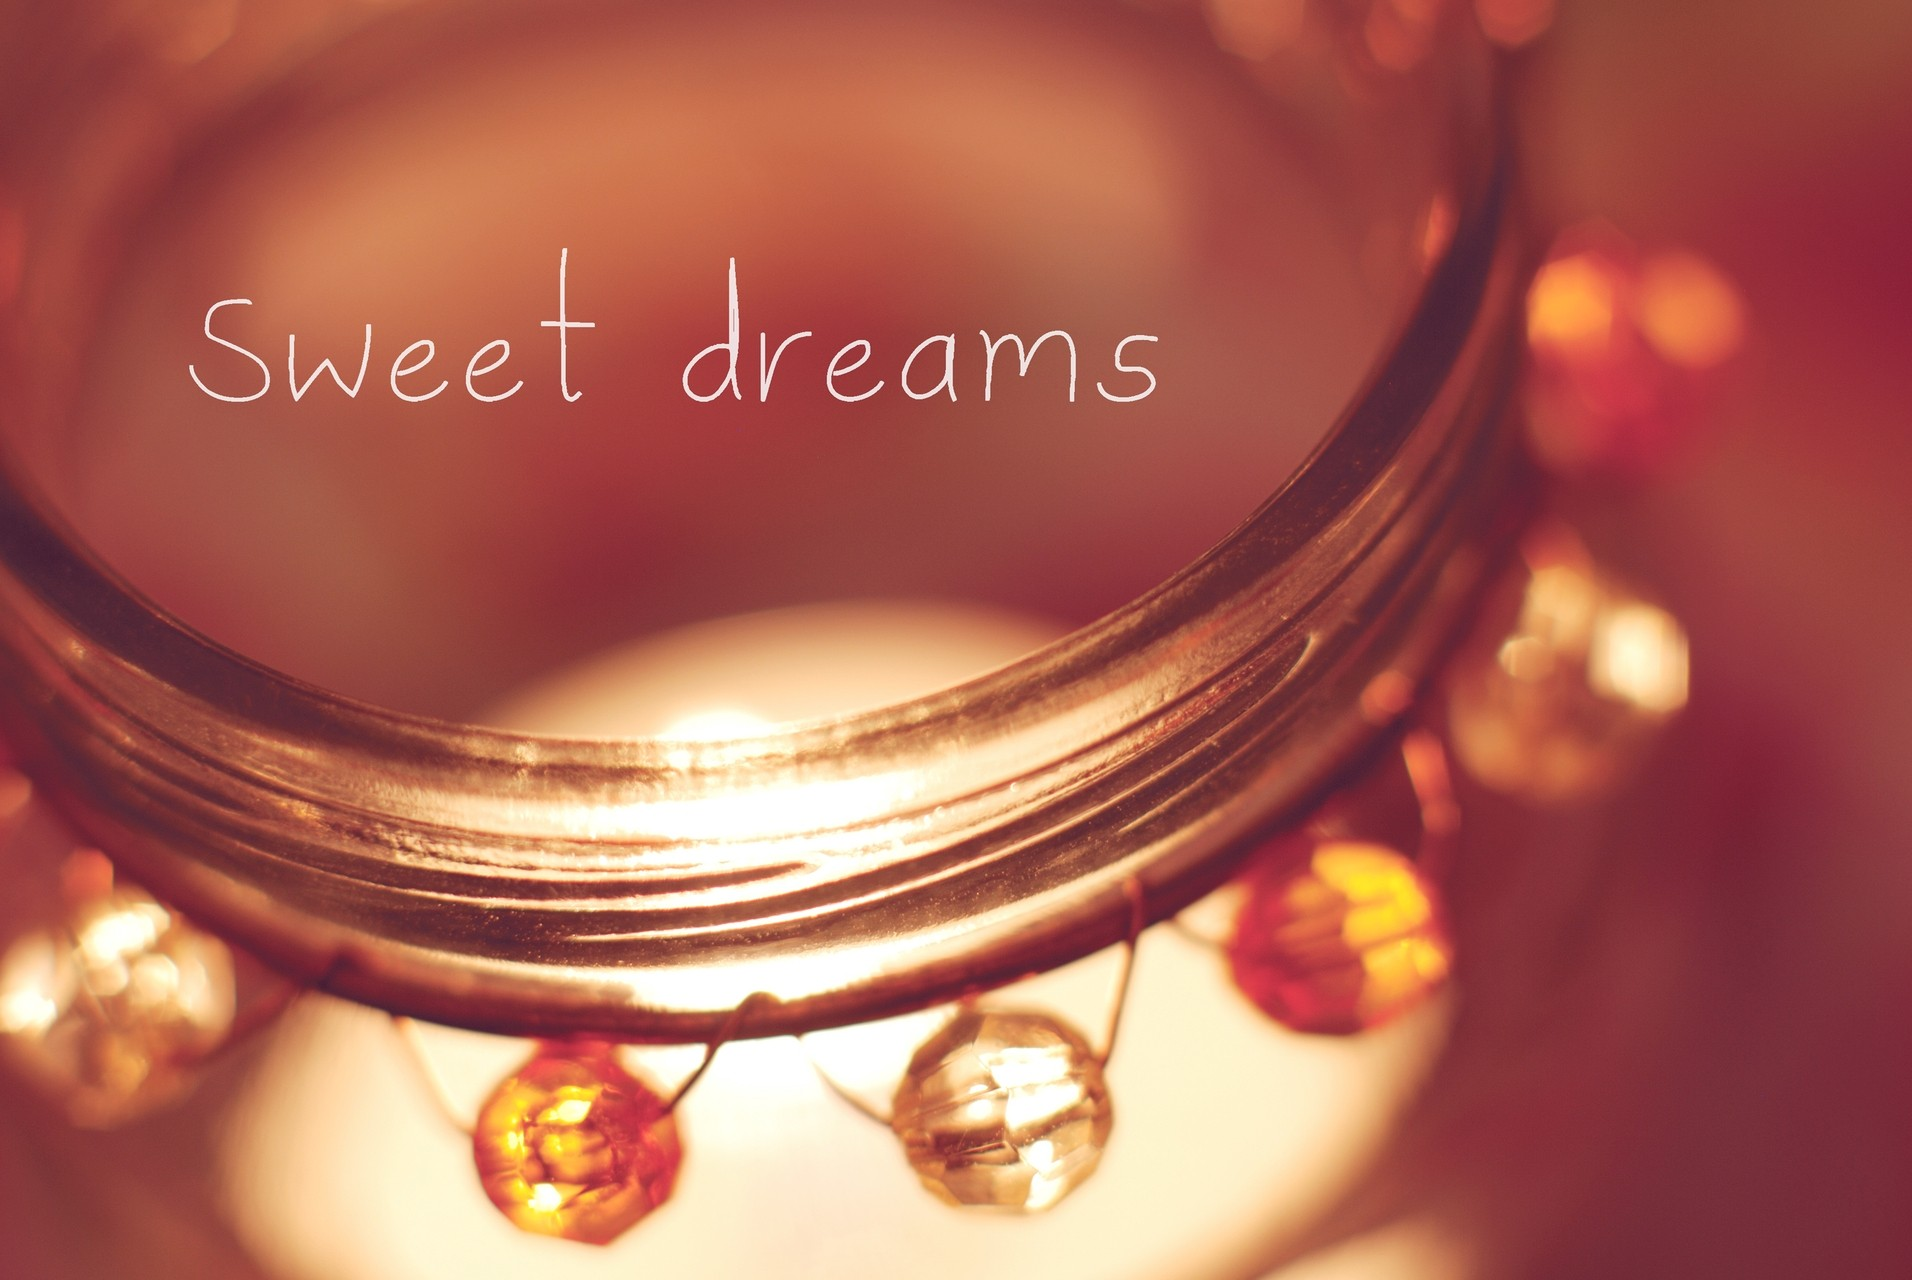 sweet dreams hd wallpapers - photo #42